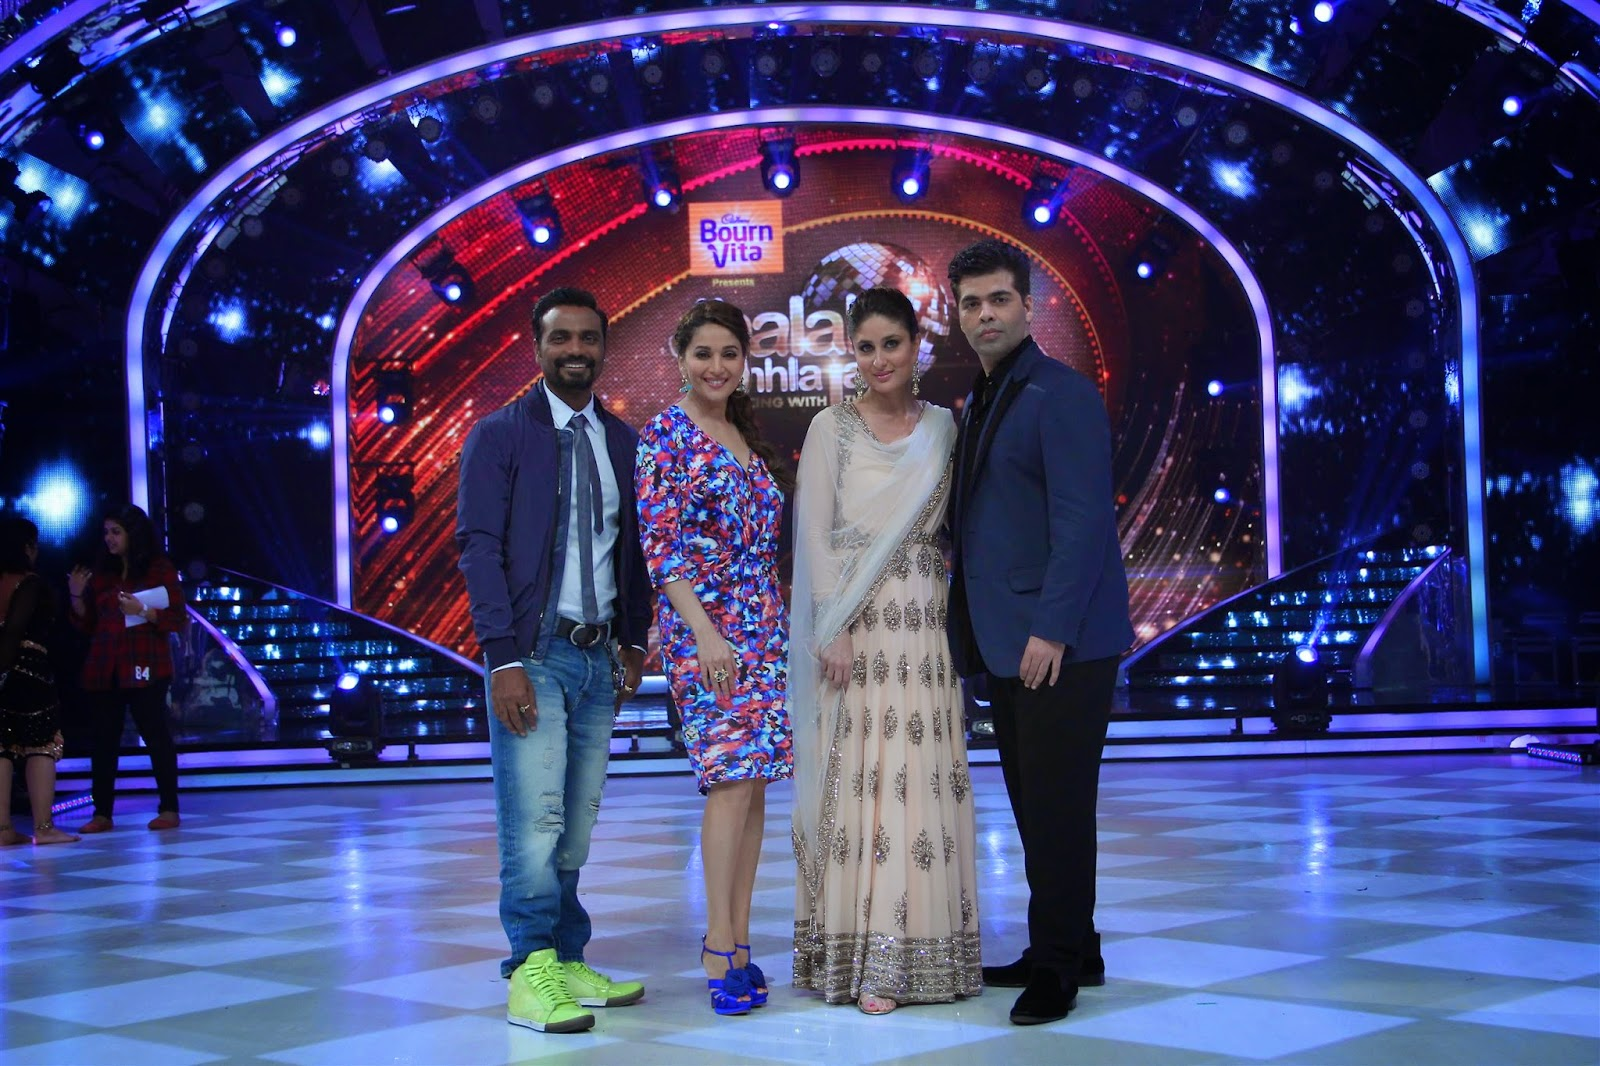 Kareena Kapoor Promotes her movie 'Singham Returns' On Jhalak Dikhhla Jaa 7